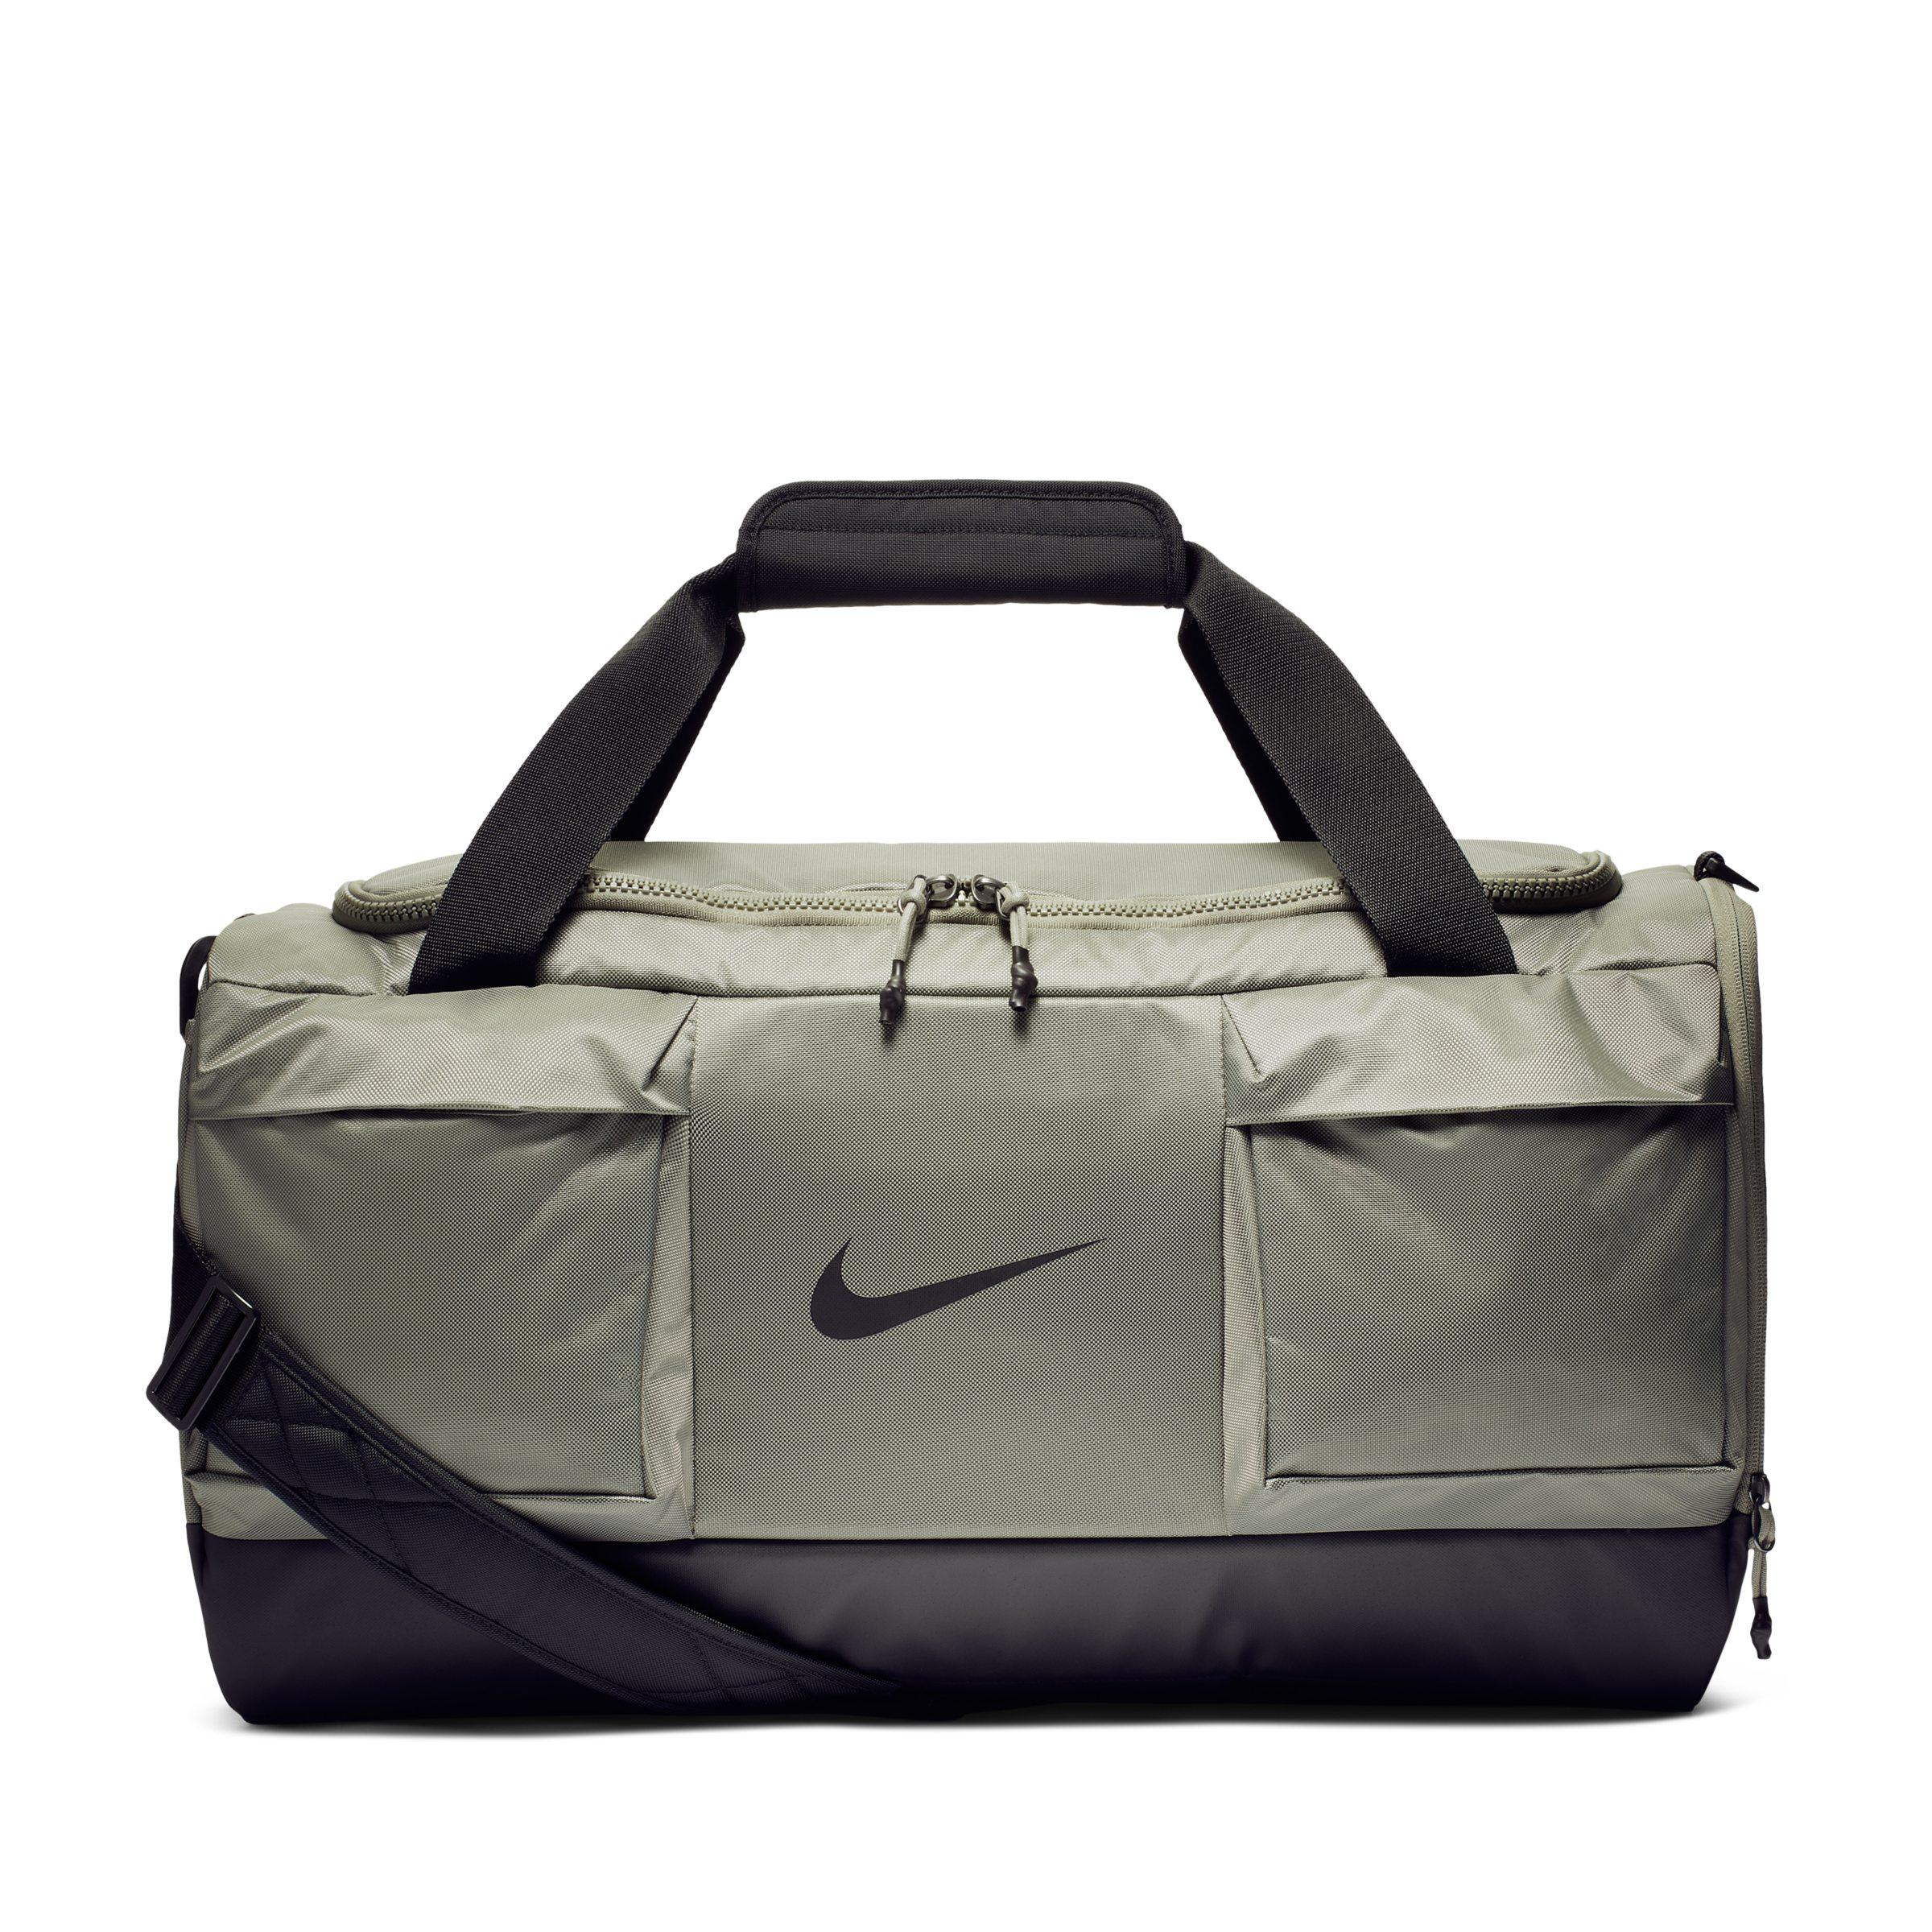 91f115ba6 Nike Vapor Power Training Duffel Bag (medium) in Gray for Men - Lyst